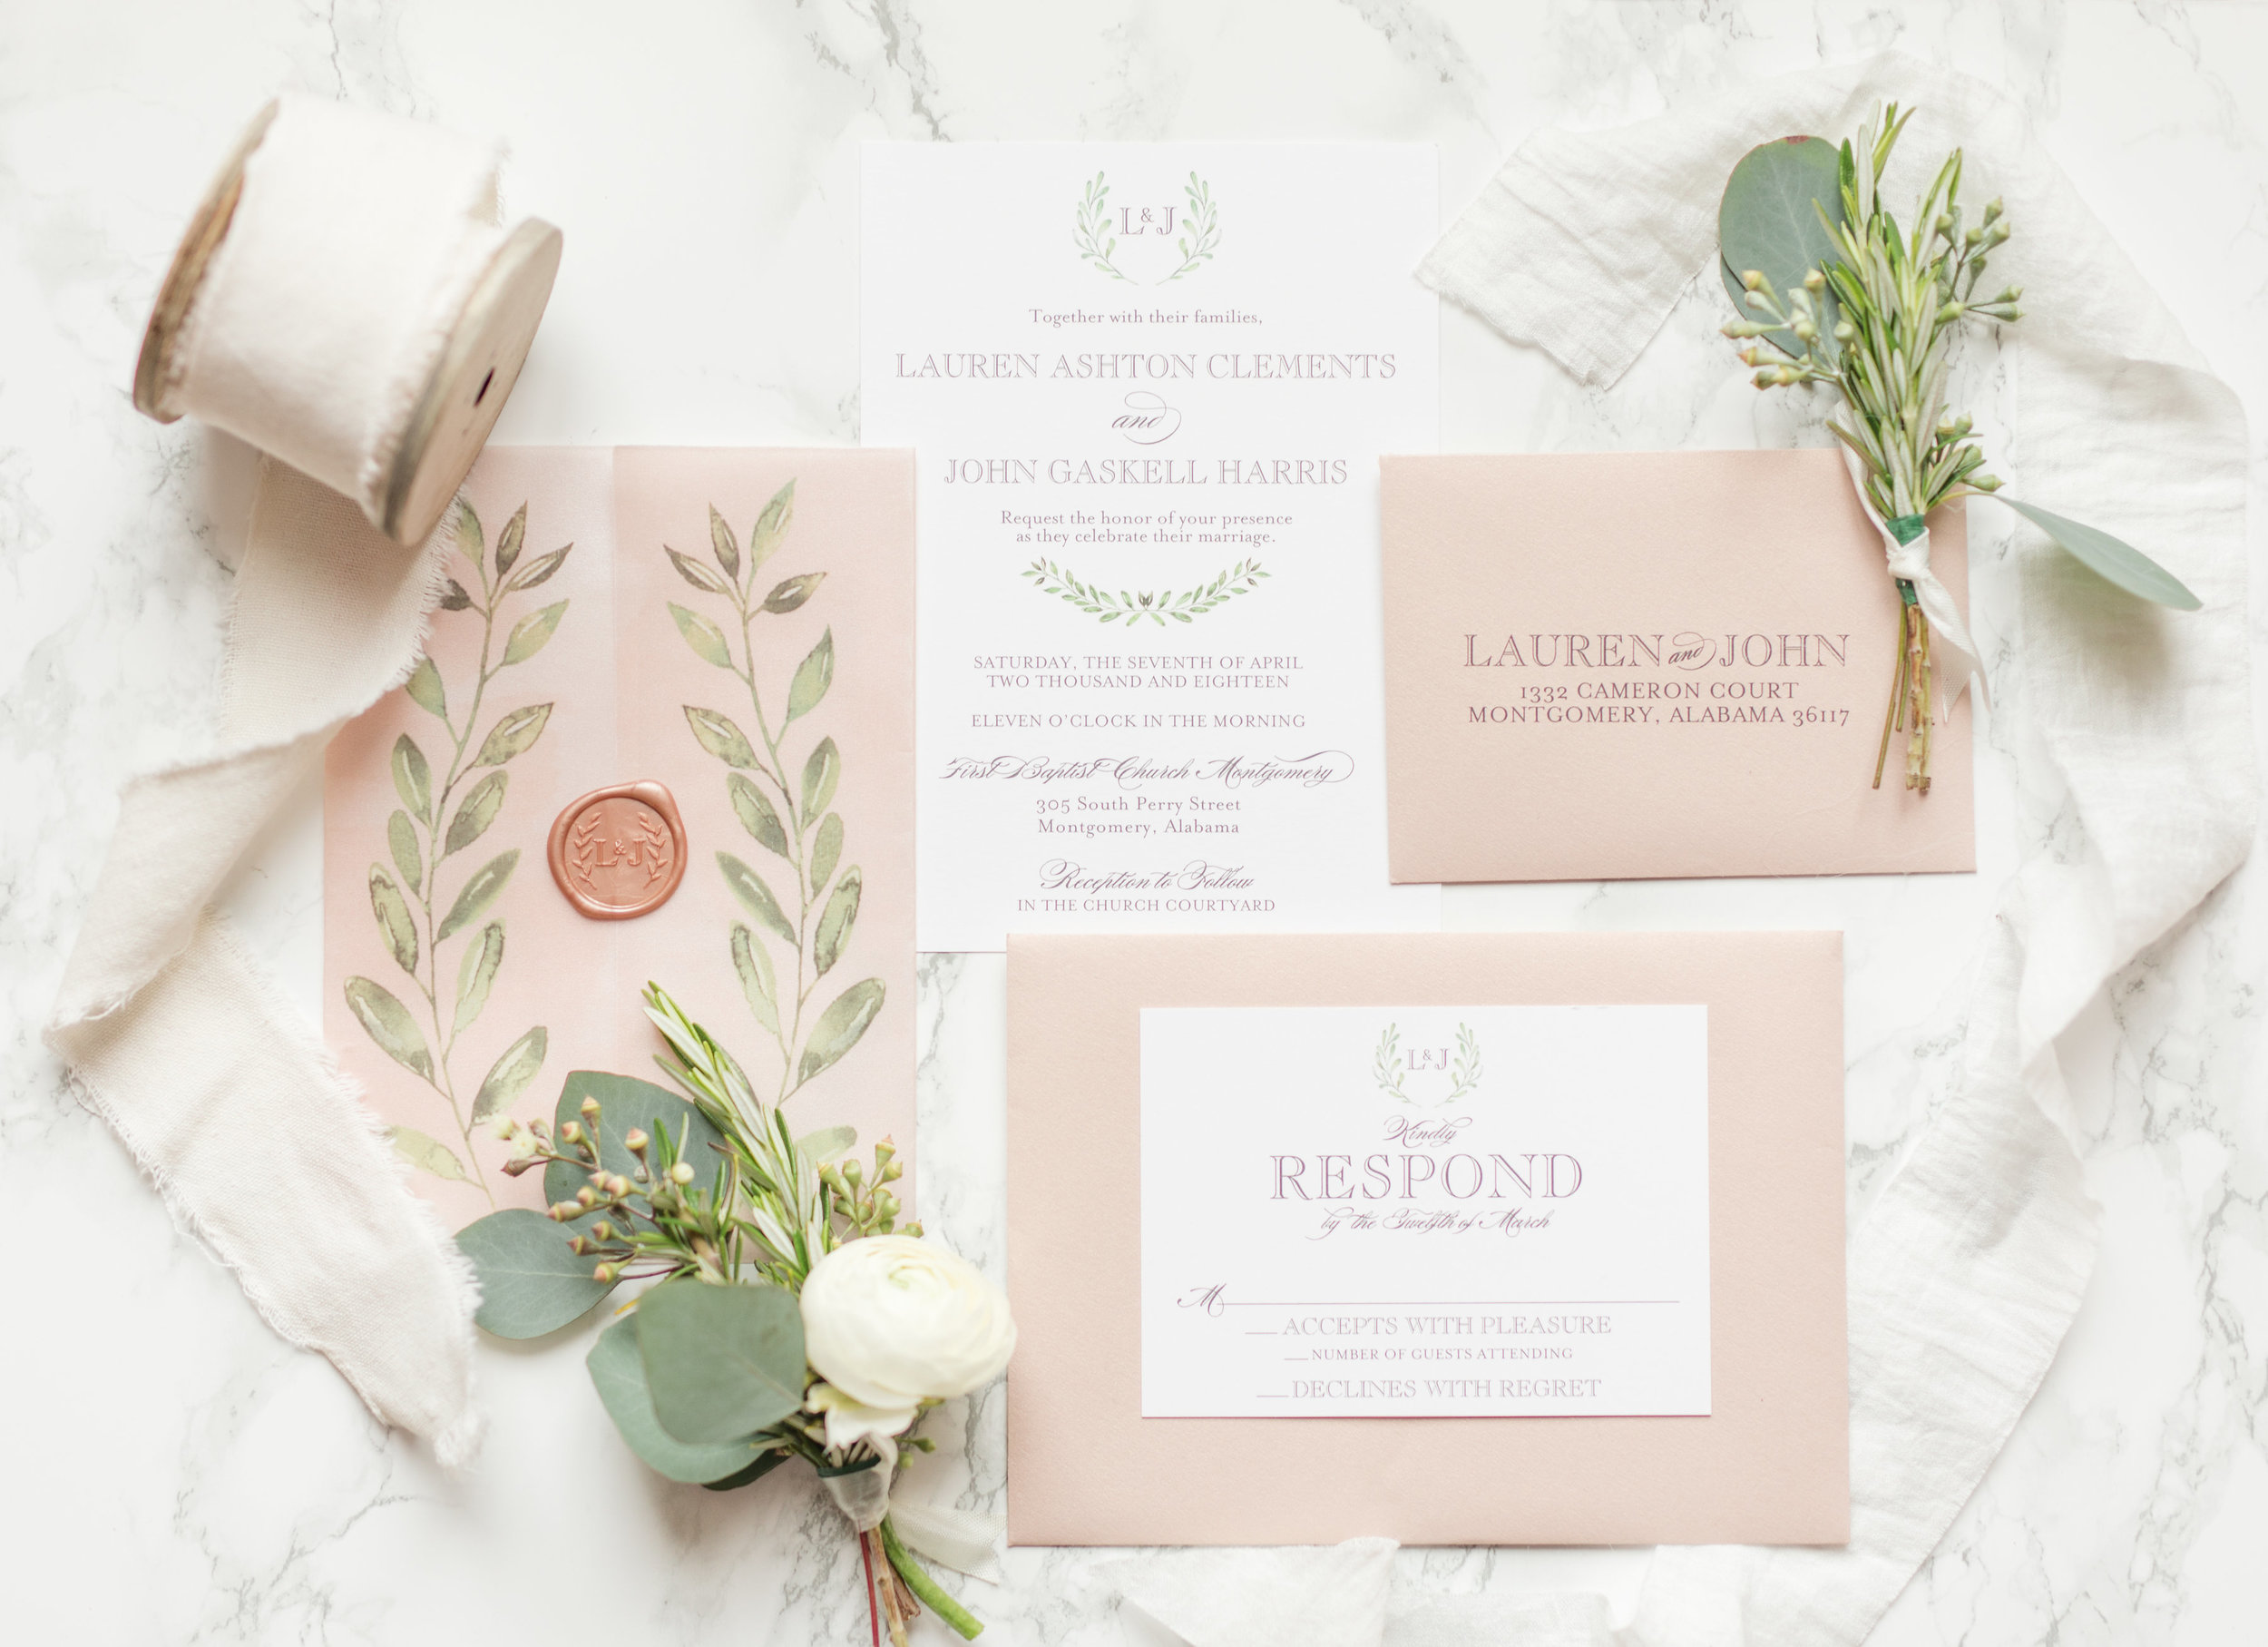 Our Greek Laurels vellum wrapped suite is perfection when sealed with a rose gold wax seal!